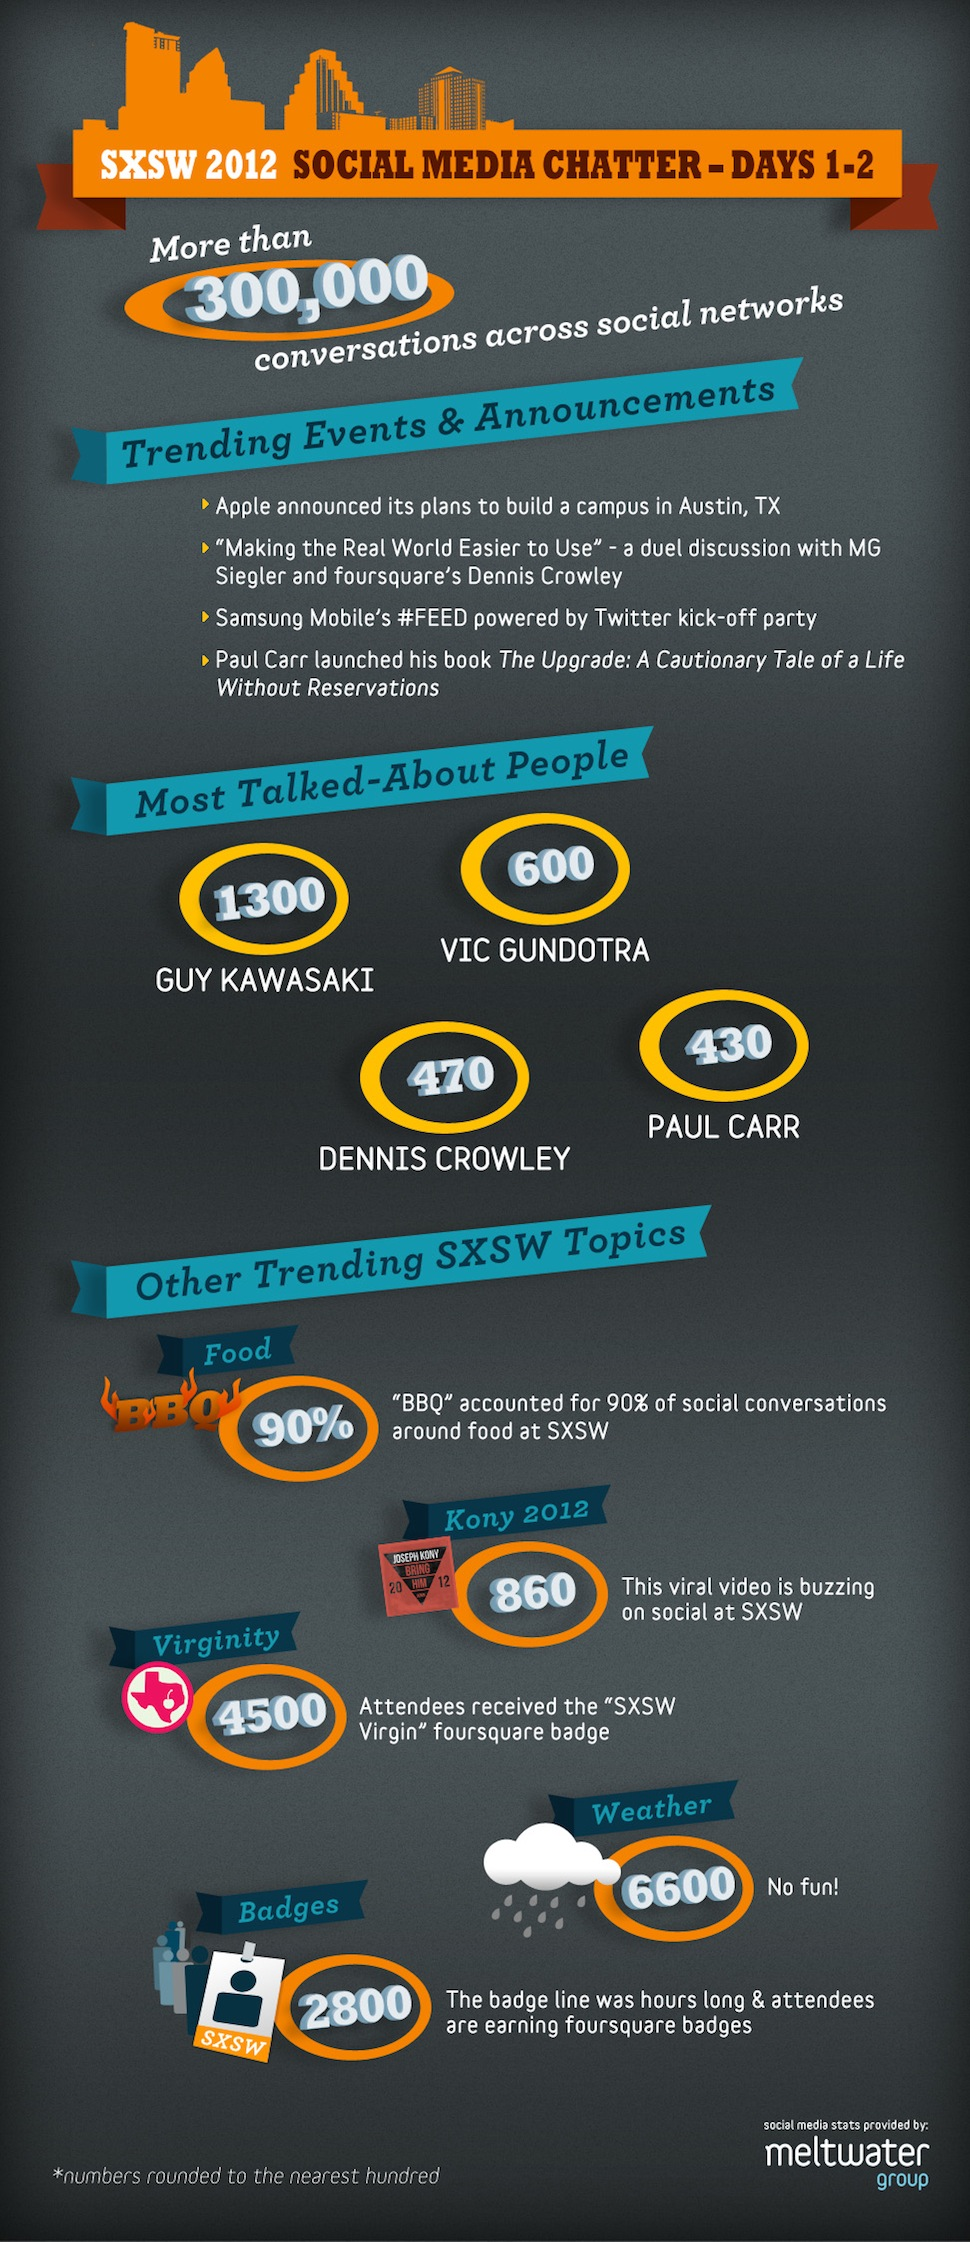 Meltwater's SXSW Day 2 graphic